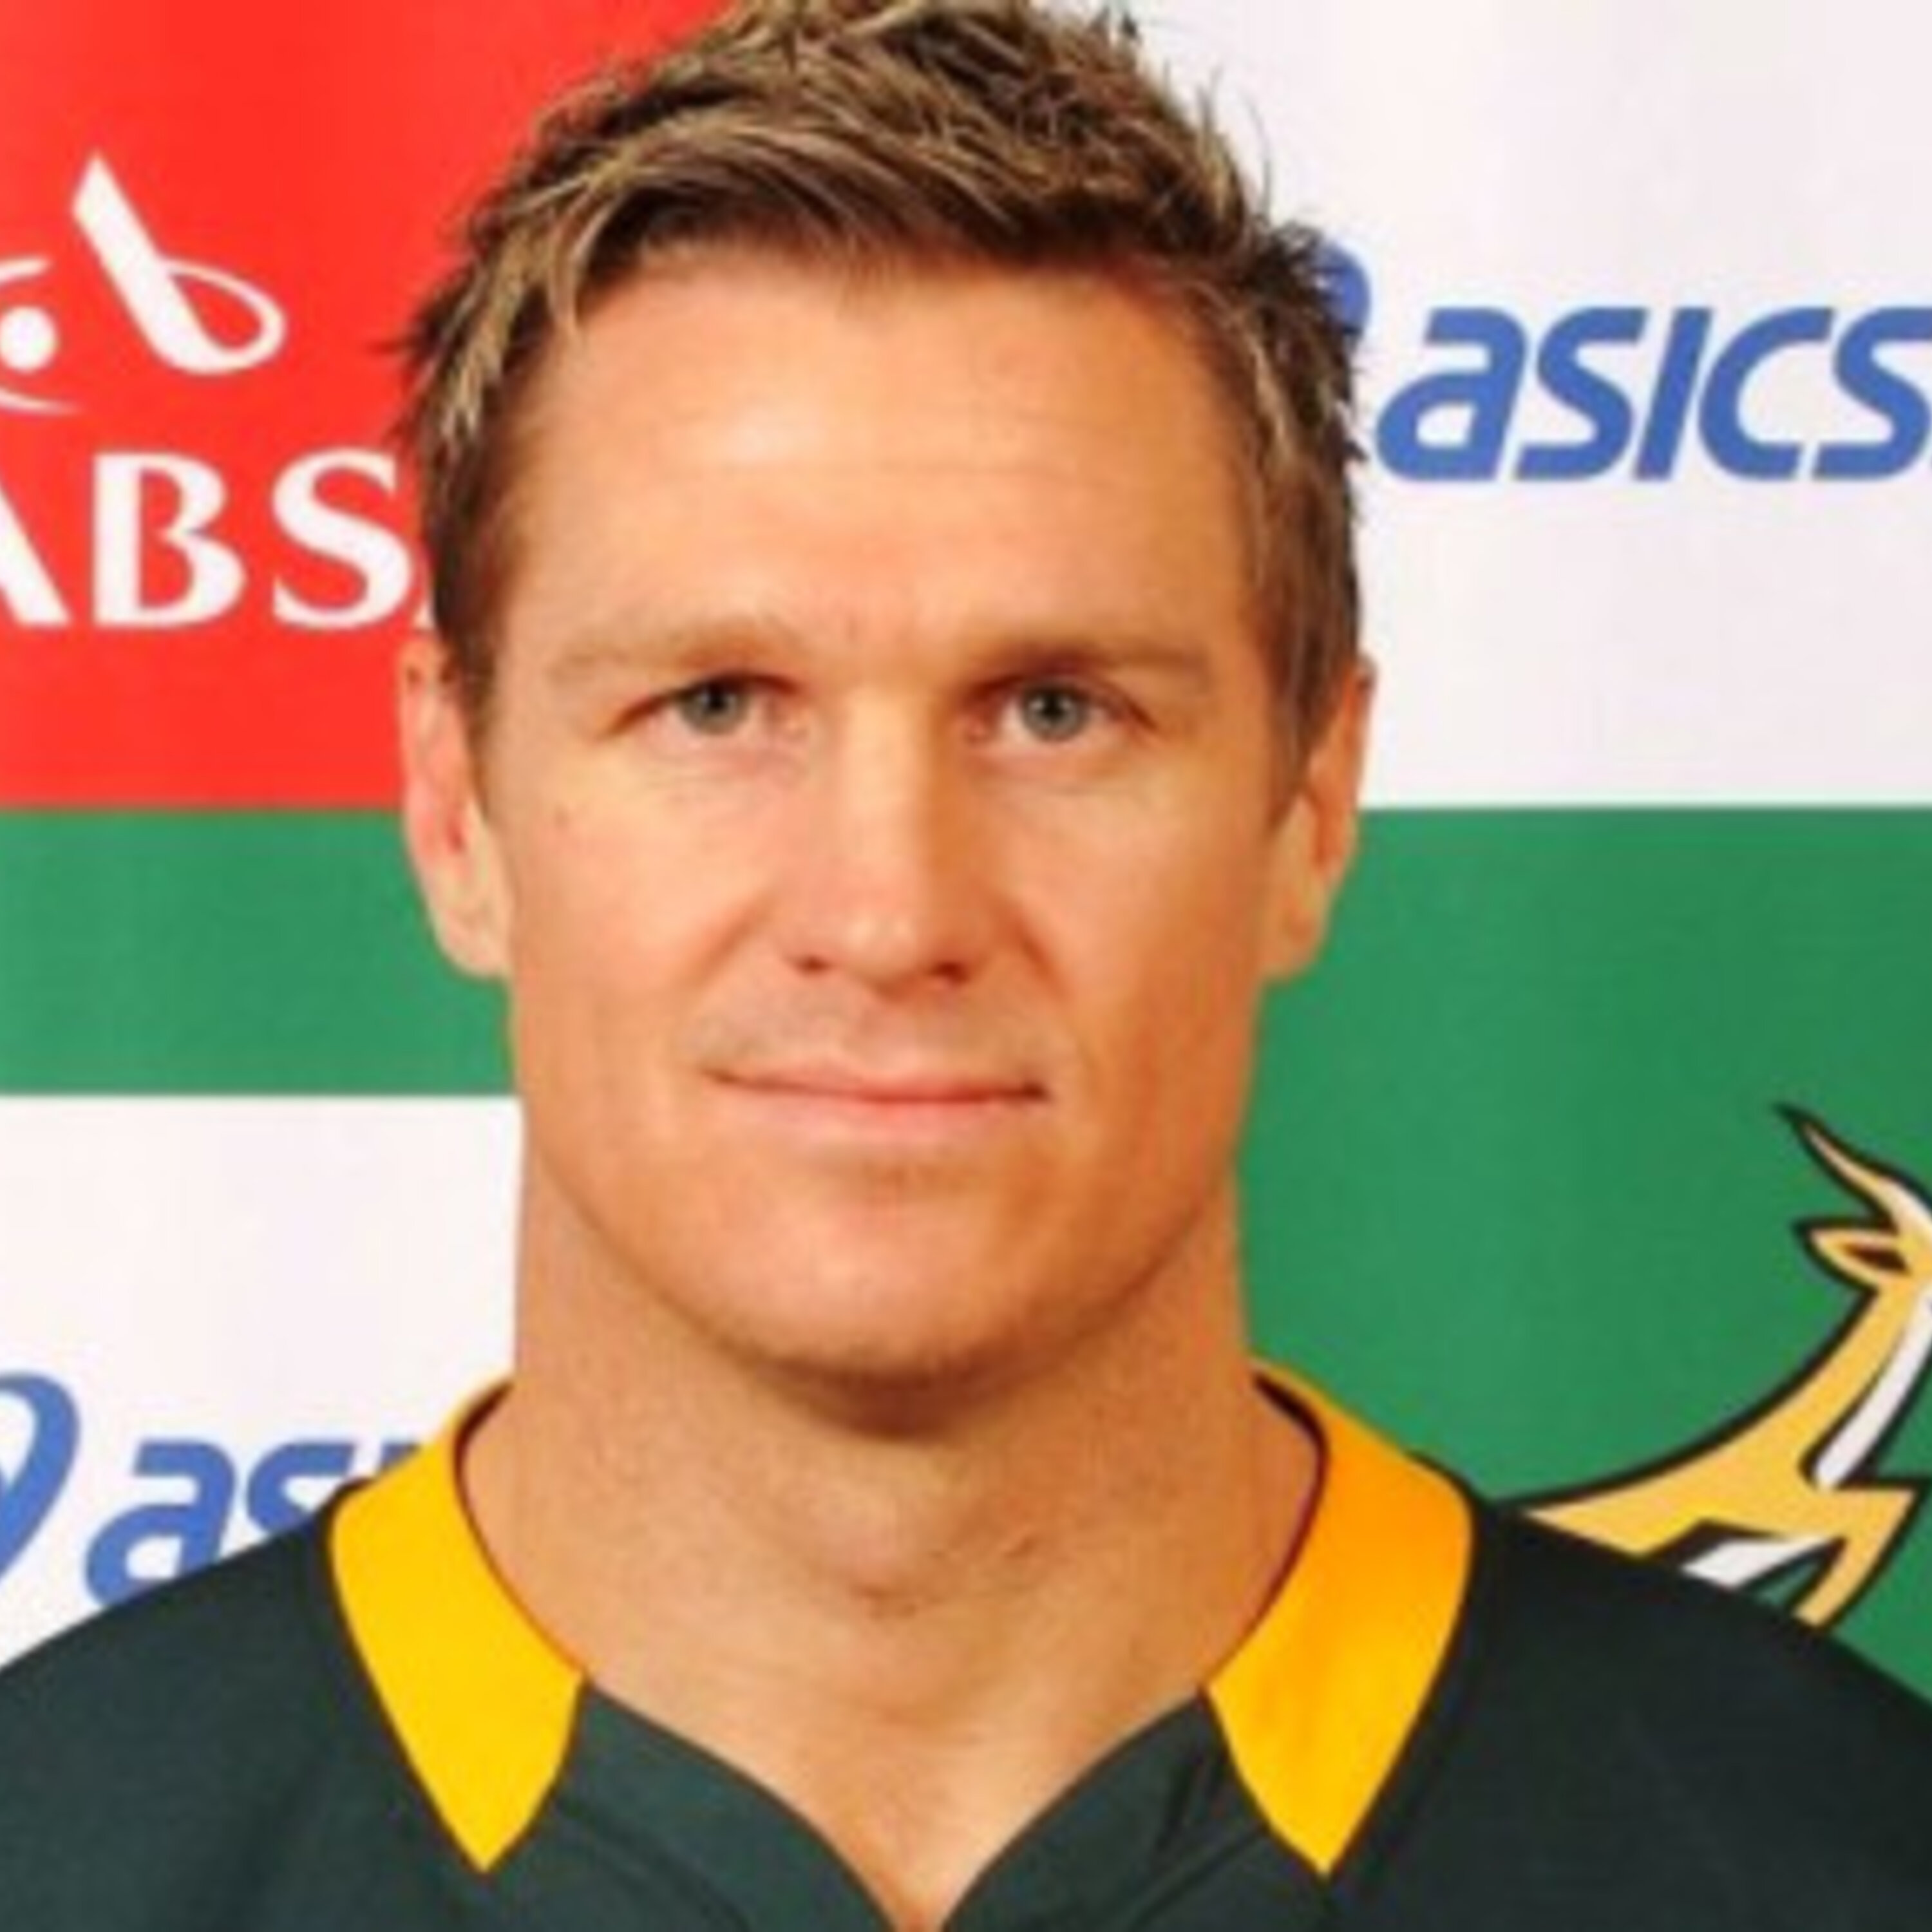 Former Springbok captain turned entrepreneur Jean de Villiers talks rugby and his current business ventures